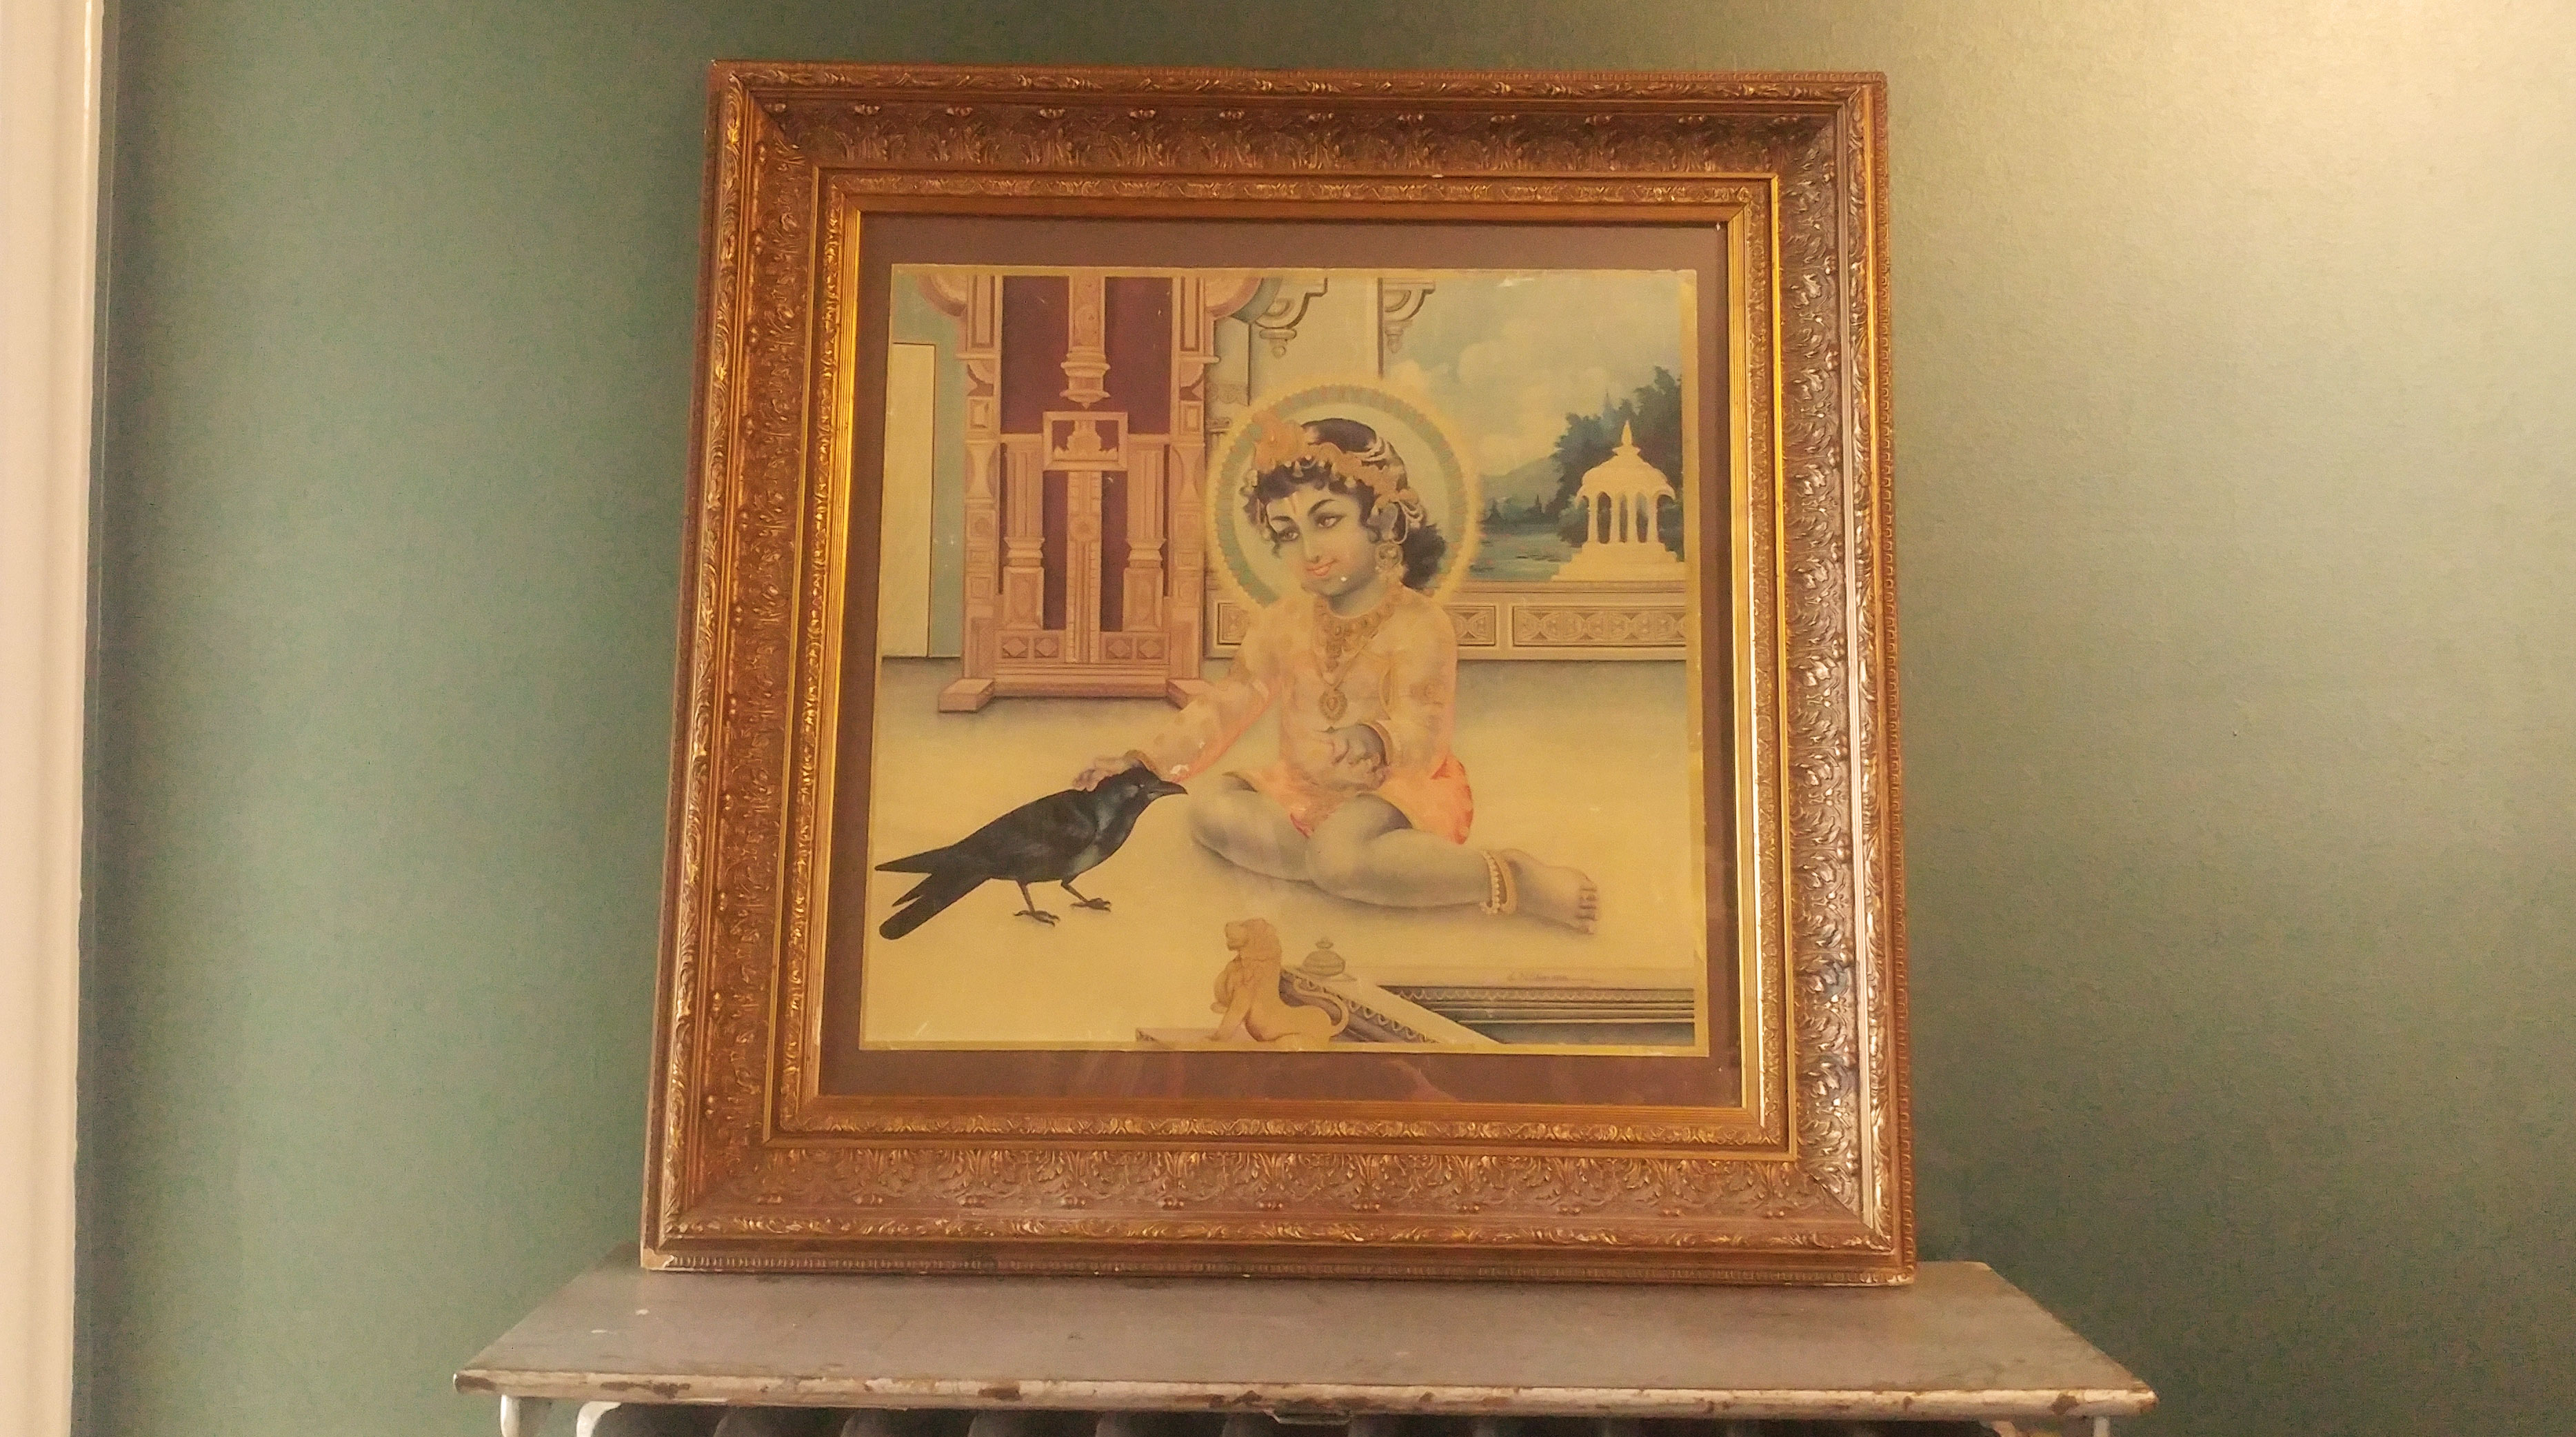 Thrifting Abroad: Finding a Krishna and Crow Print